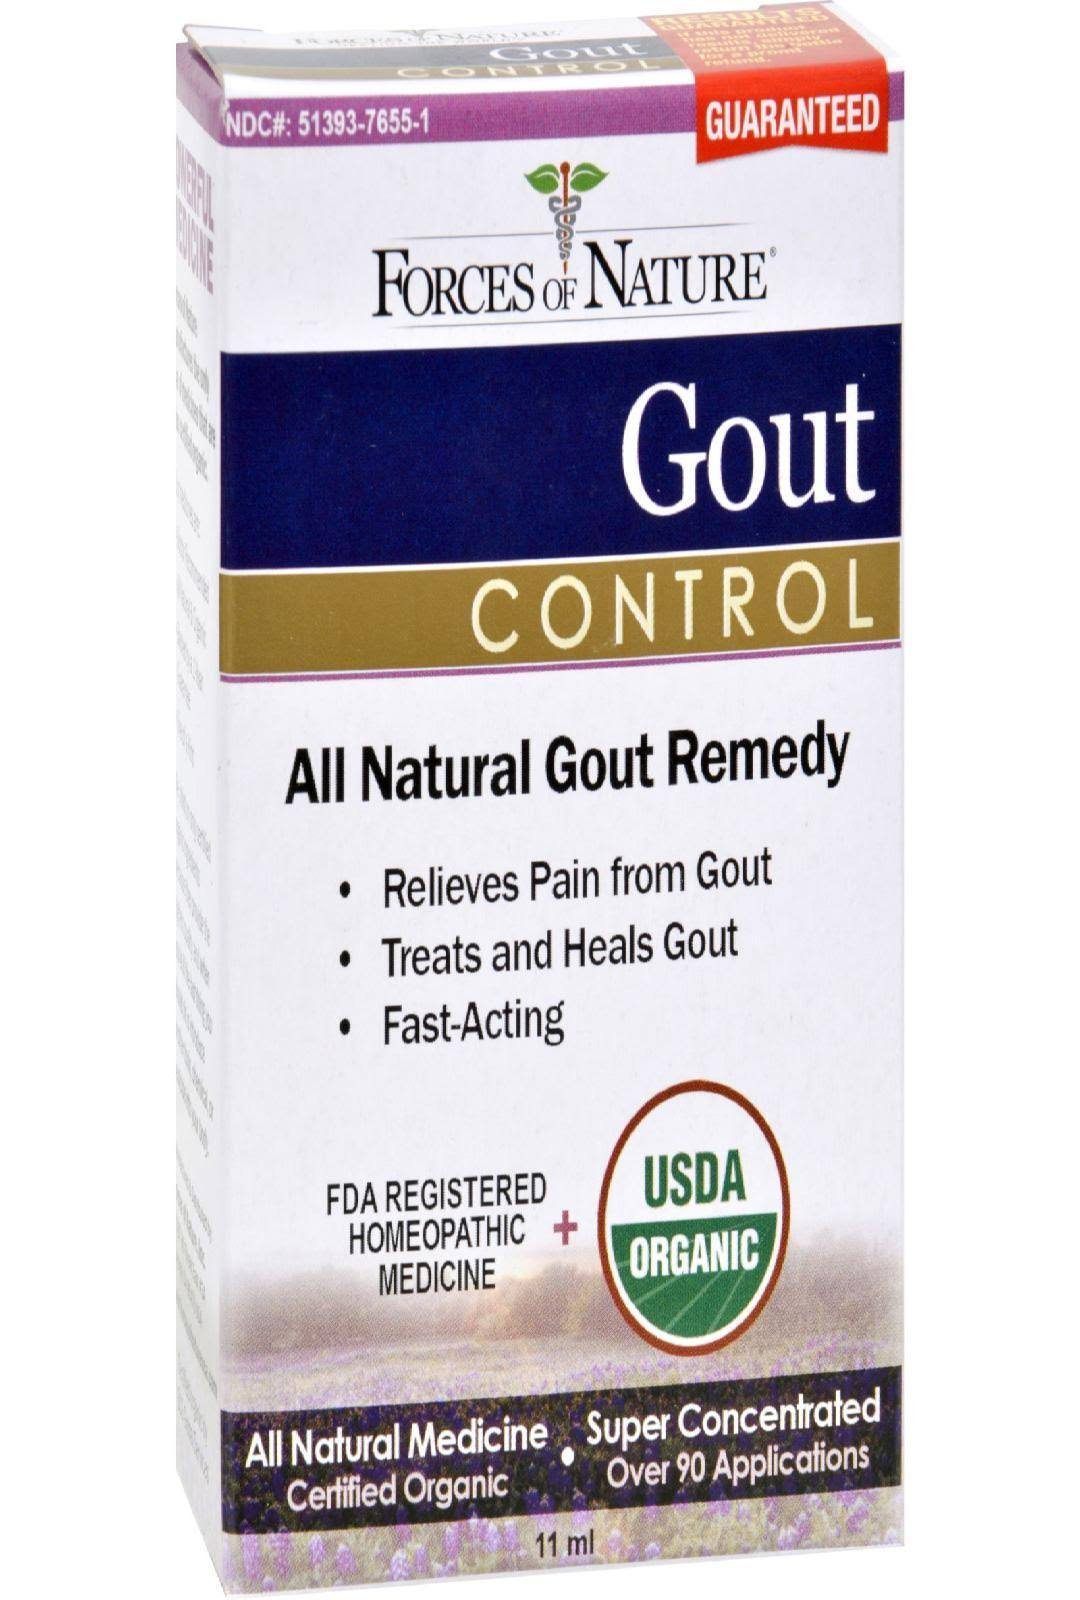 Forces Of Nature Gout Control Relief - 11ml